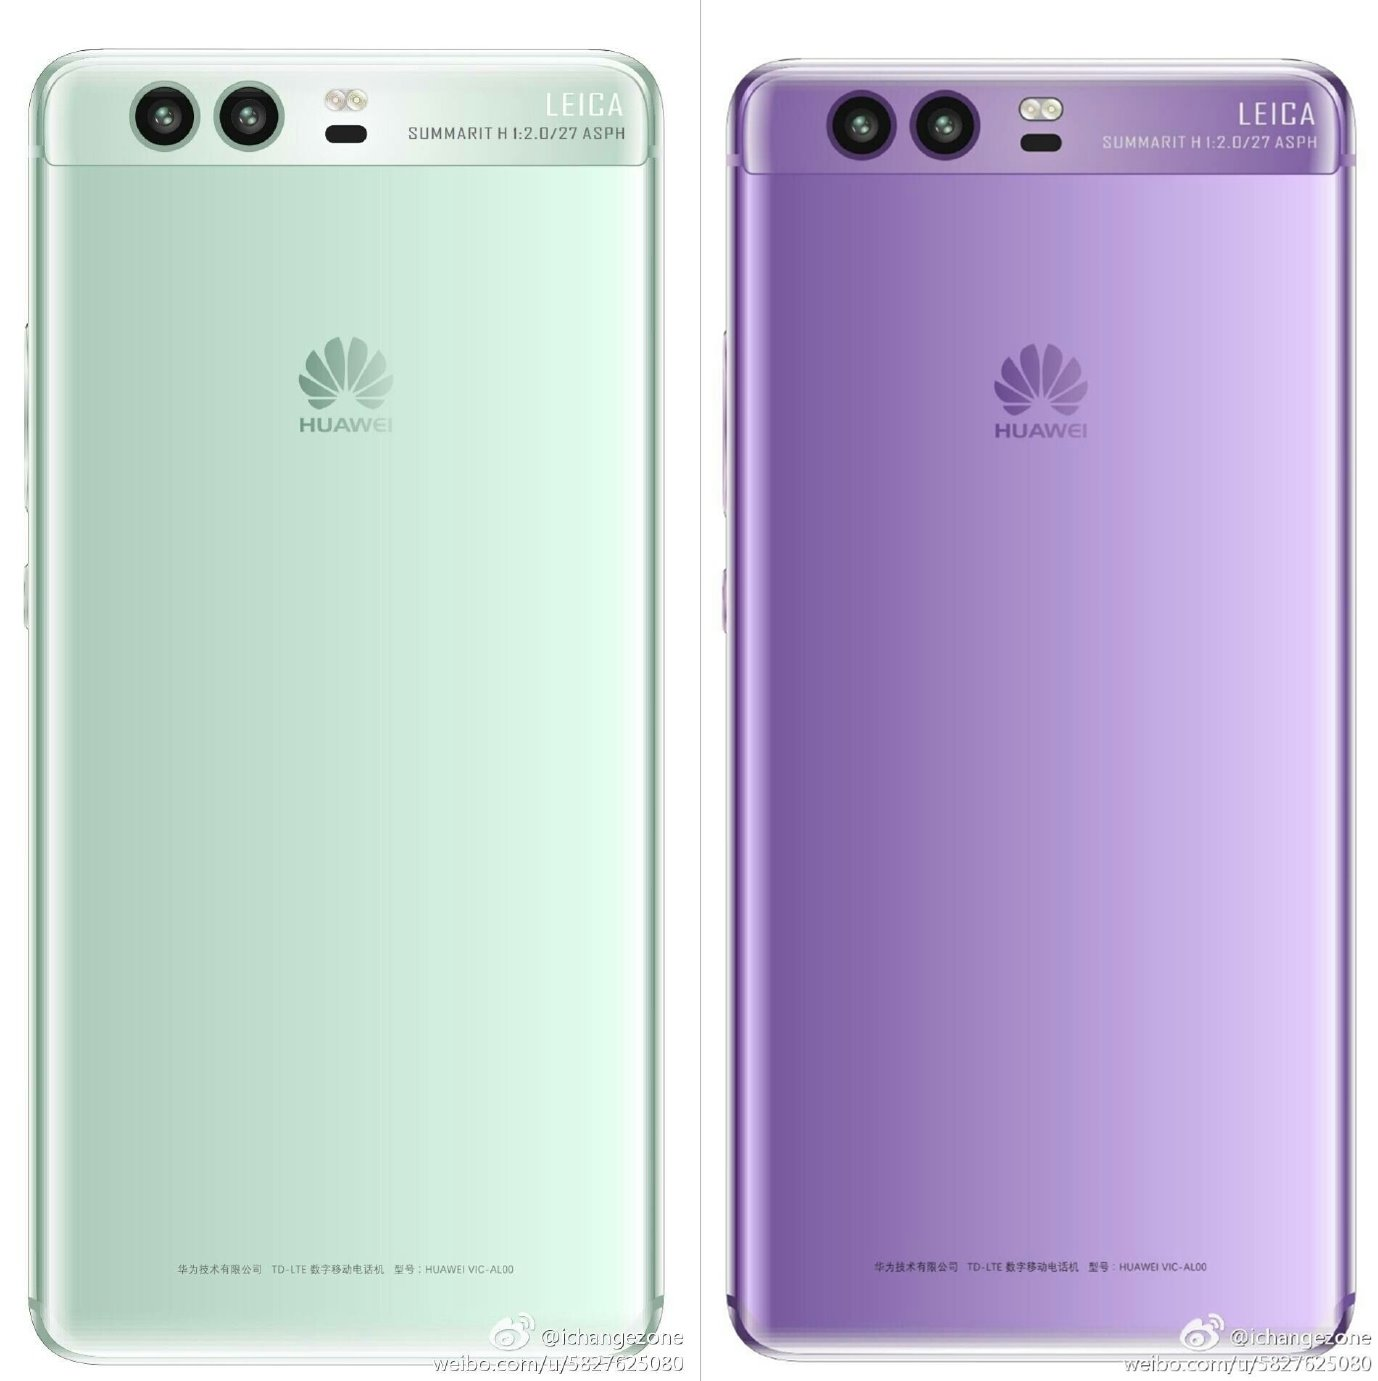 Huawei P10 Images Leaked In Green And Purple Color